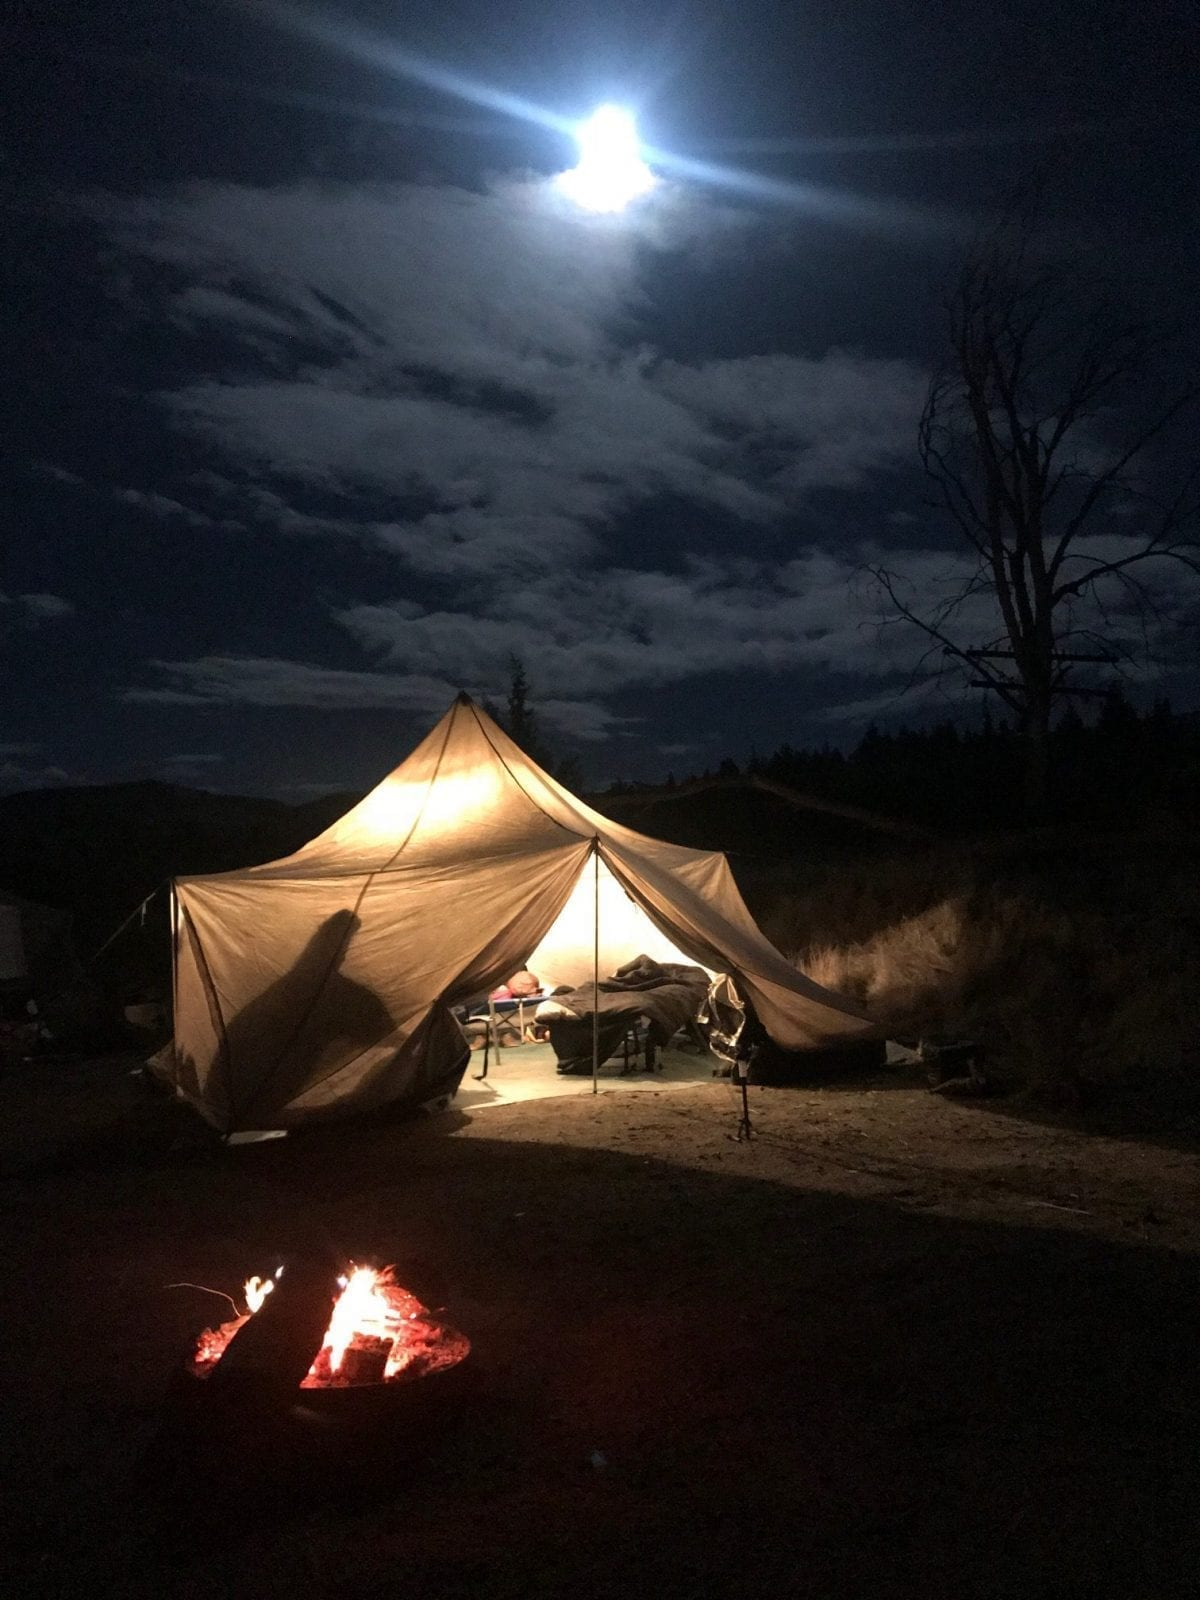 Water Time Outfitters Camp on the Deschutes River